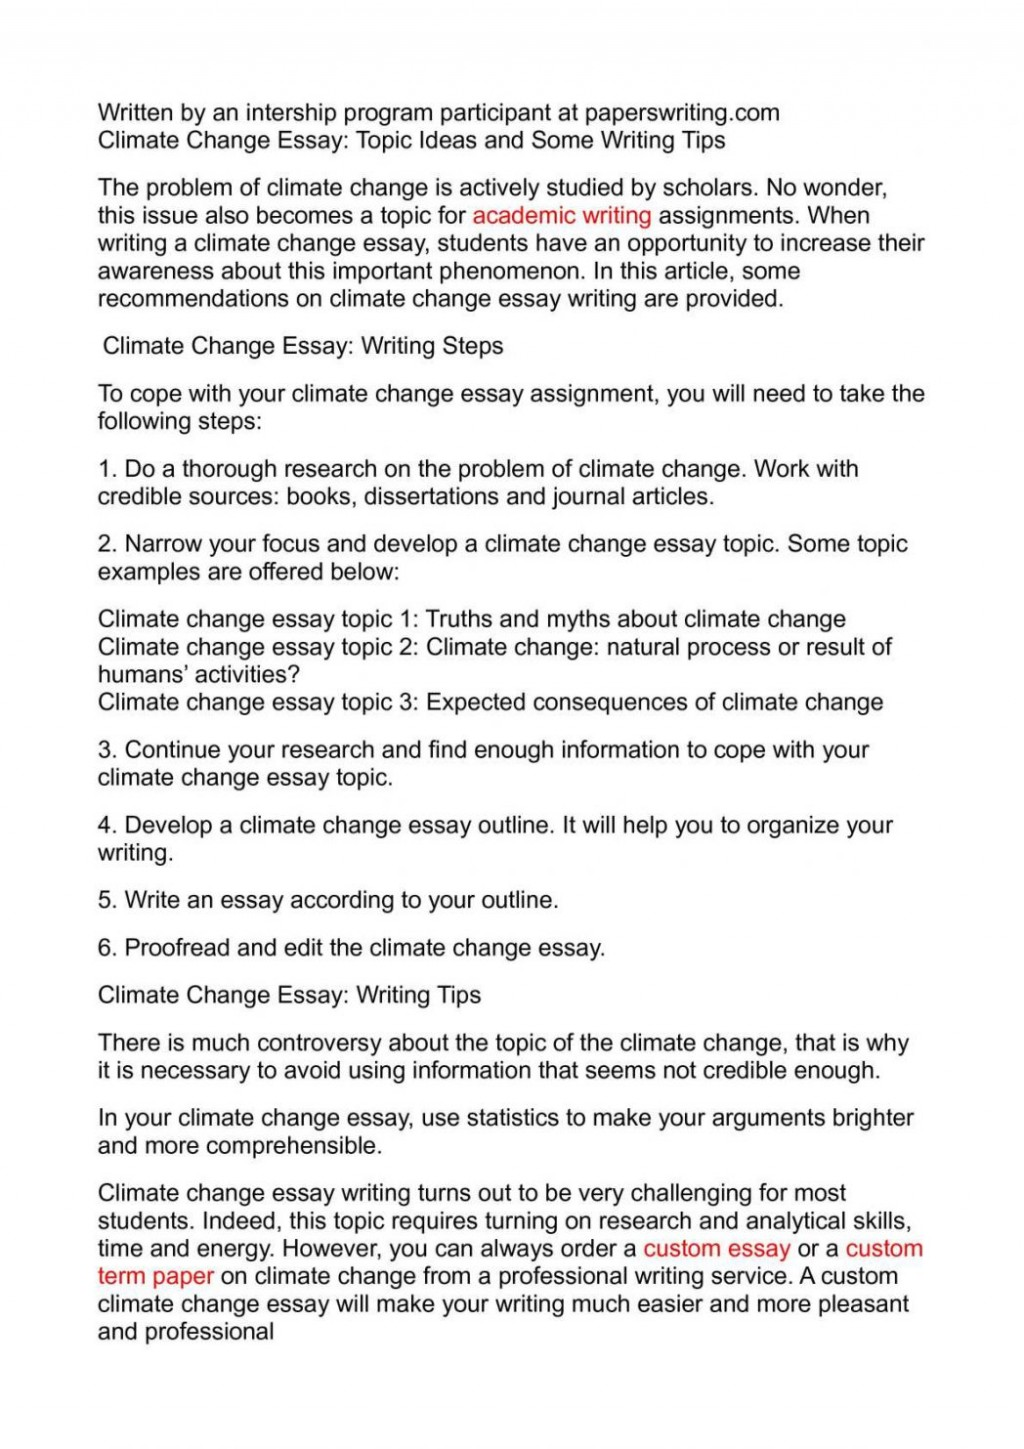 004 Global Climate Change Essay Warming And How To Write An Abo Argumentative On Persuasive Study Mode About Good Paper 1048x1483 Awesome High School In English 150 Words Kenya Art Competition 2018 Large